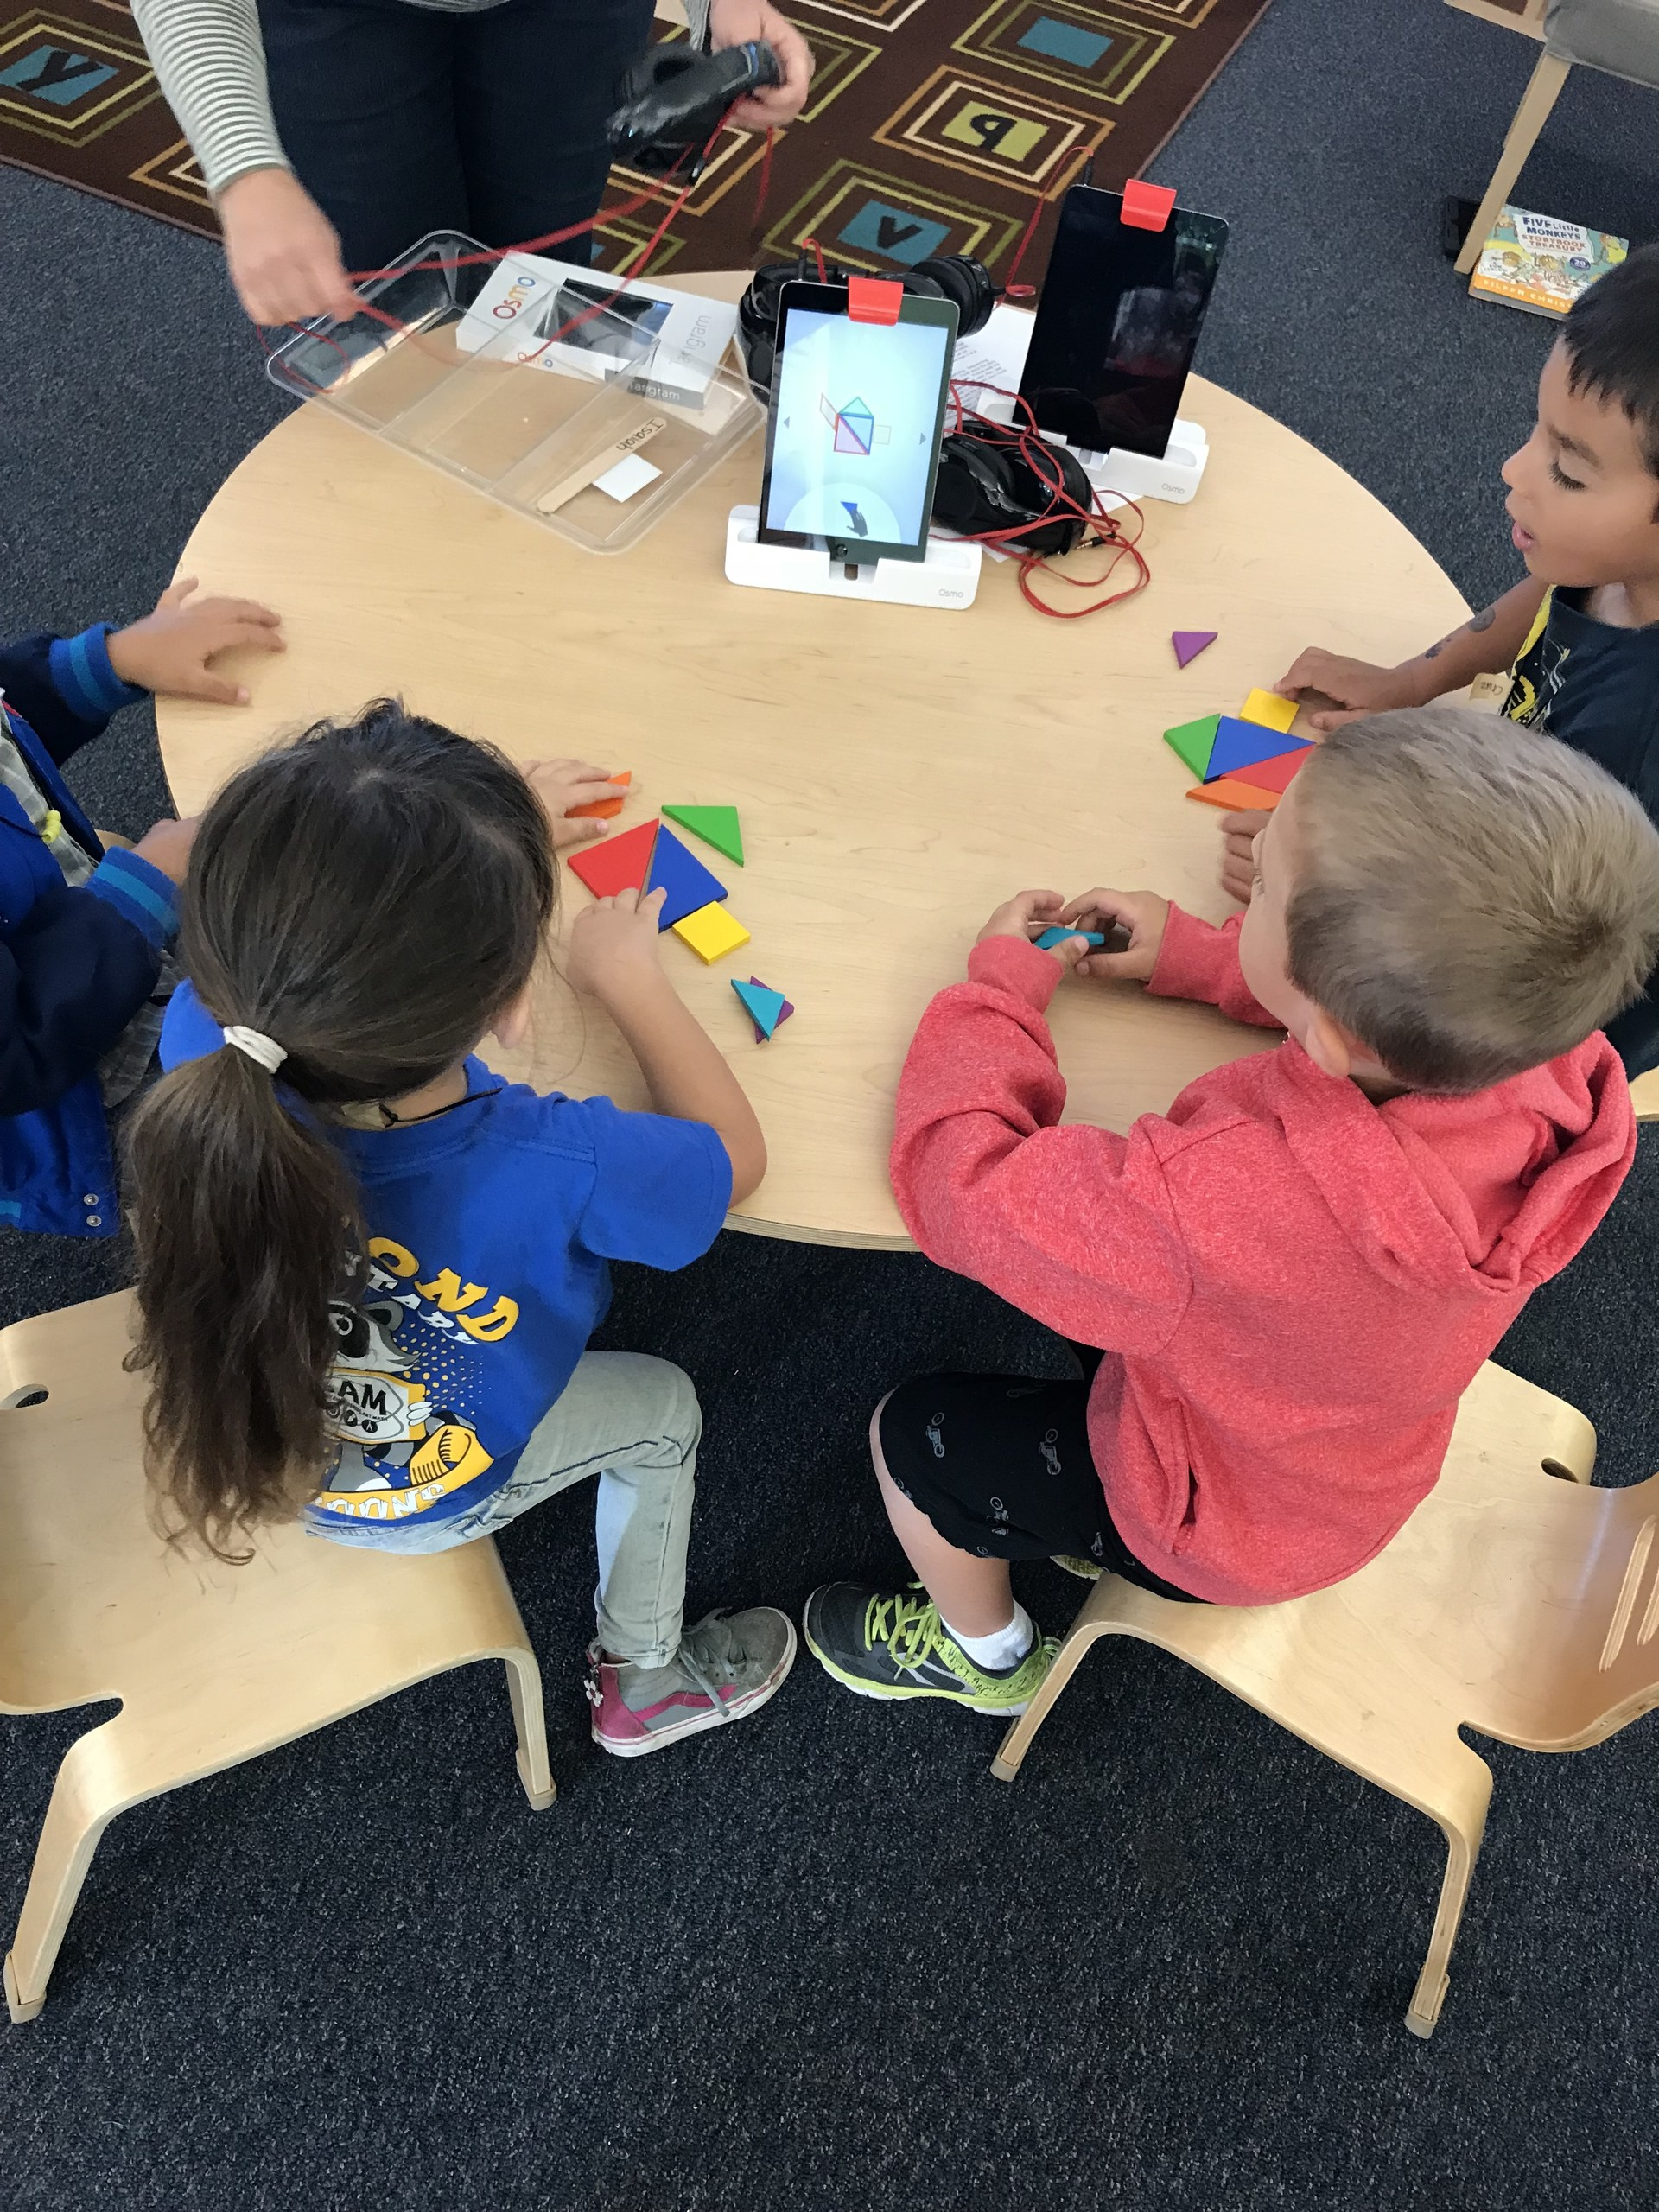 Students using the OSMO as they work with puzzles.